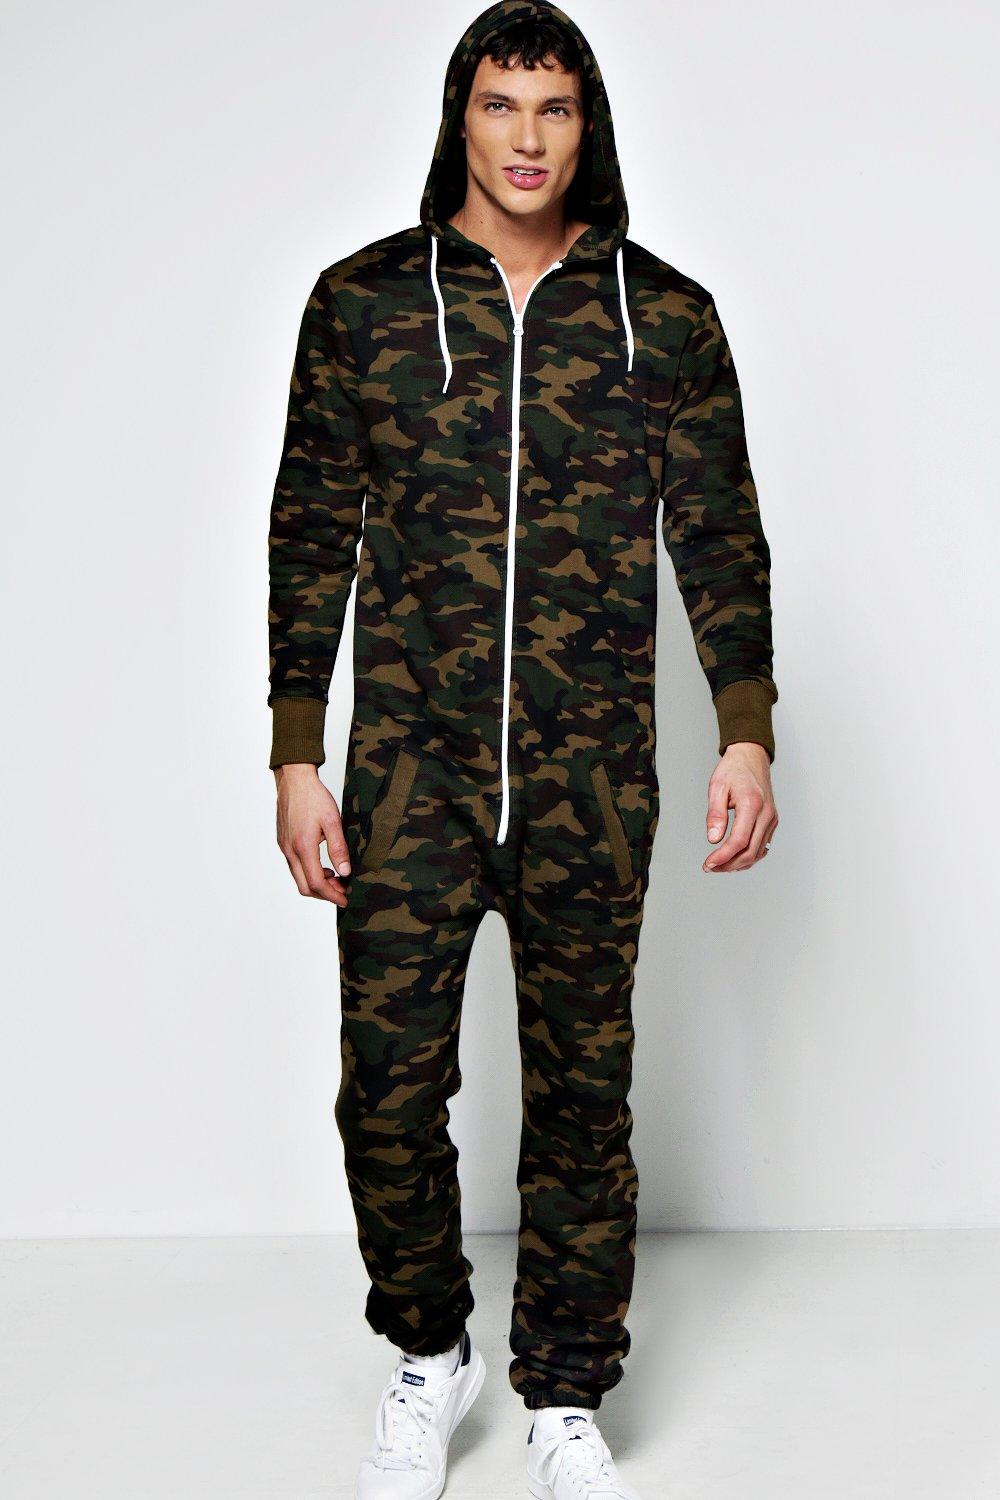 Find great deals on eBay for mens camo onesie. Shop with confidence. Skip to main content. eBay: Shop by category. MENS HUNTERS ONESIE Gents camo zip hoody jumpsuit tree camouflage all in onesee. Brand New. $ to $ From United Kingdom. Buy It Now +$ shipping. 59+ Sold.